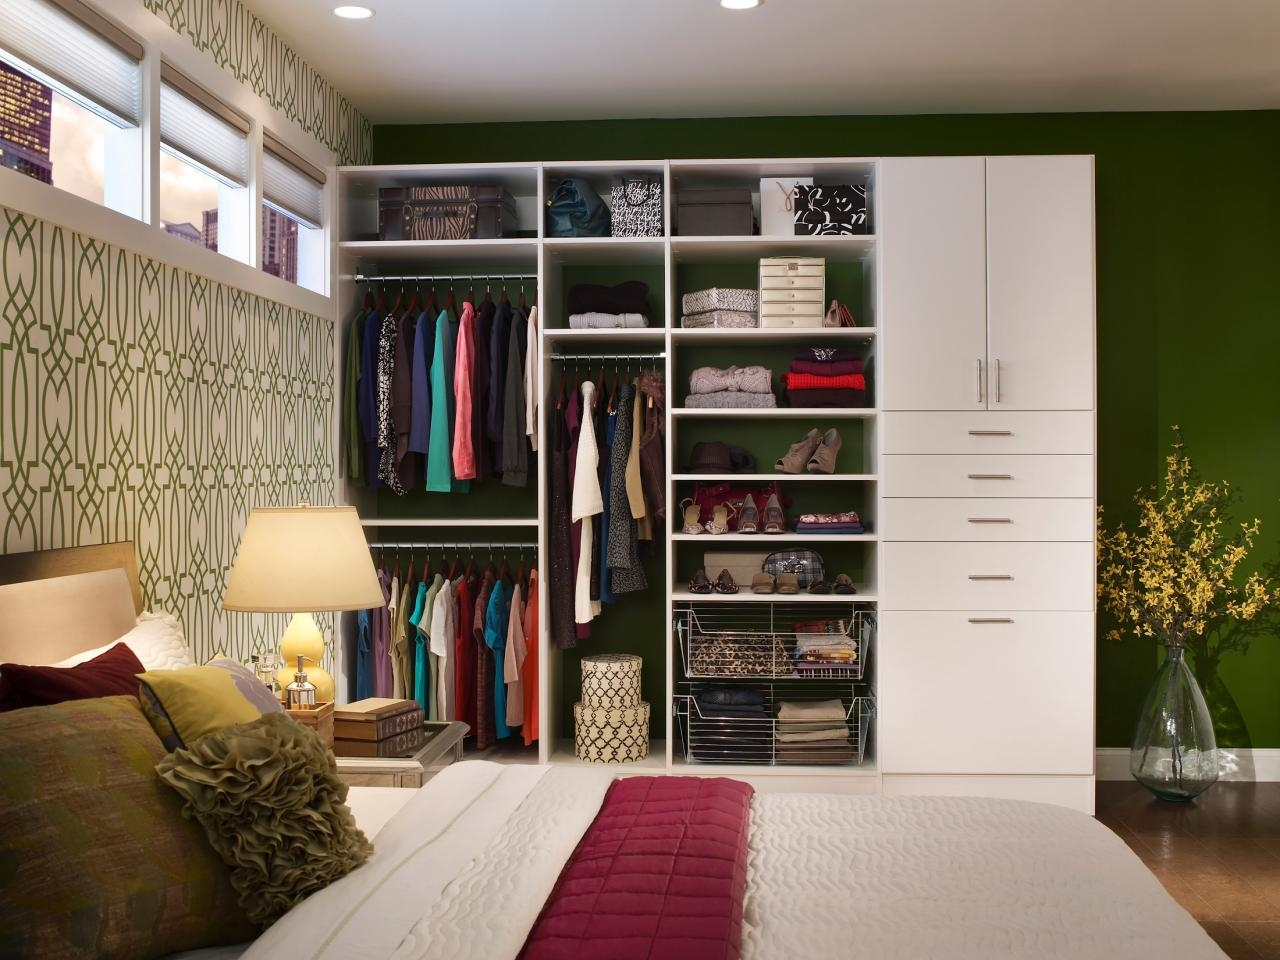 Armoires And Wardrobes Closet Storage Ideas And Solutions Hgtv Throughout Bedroom Wardrobe Storages (View 21 of 25)